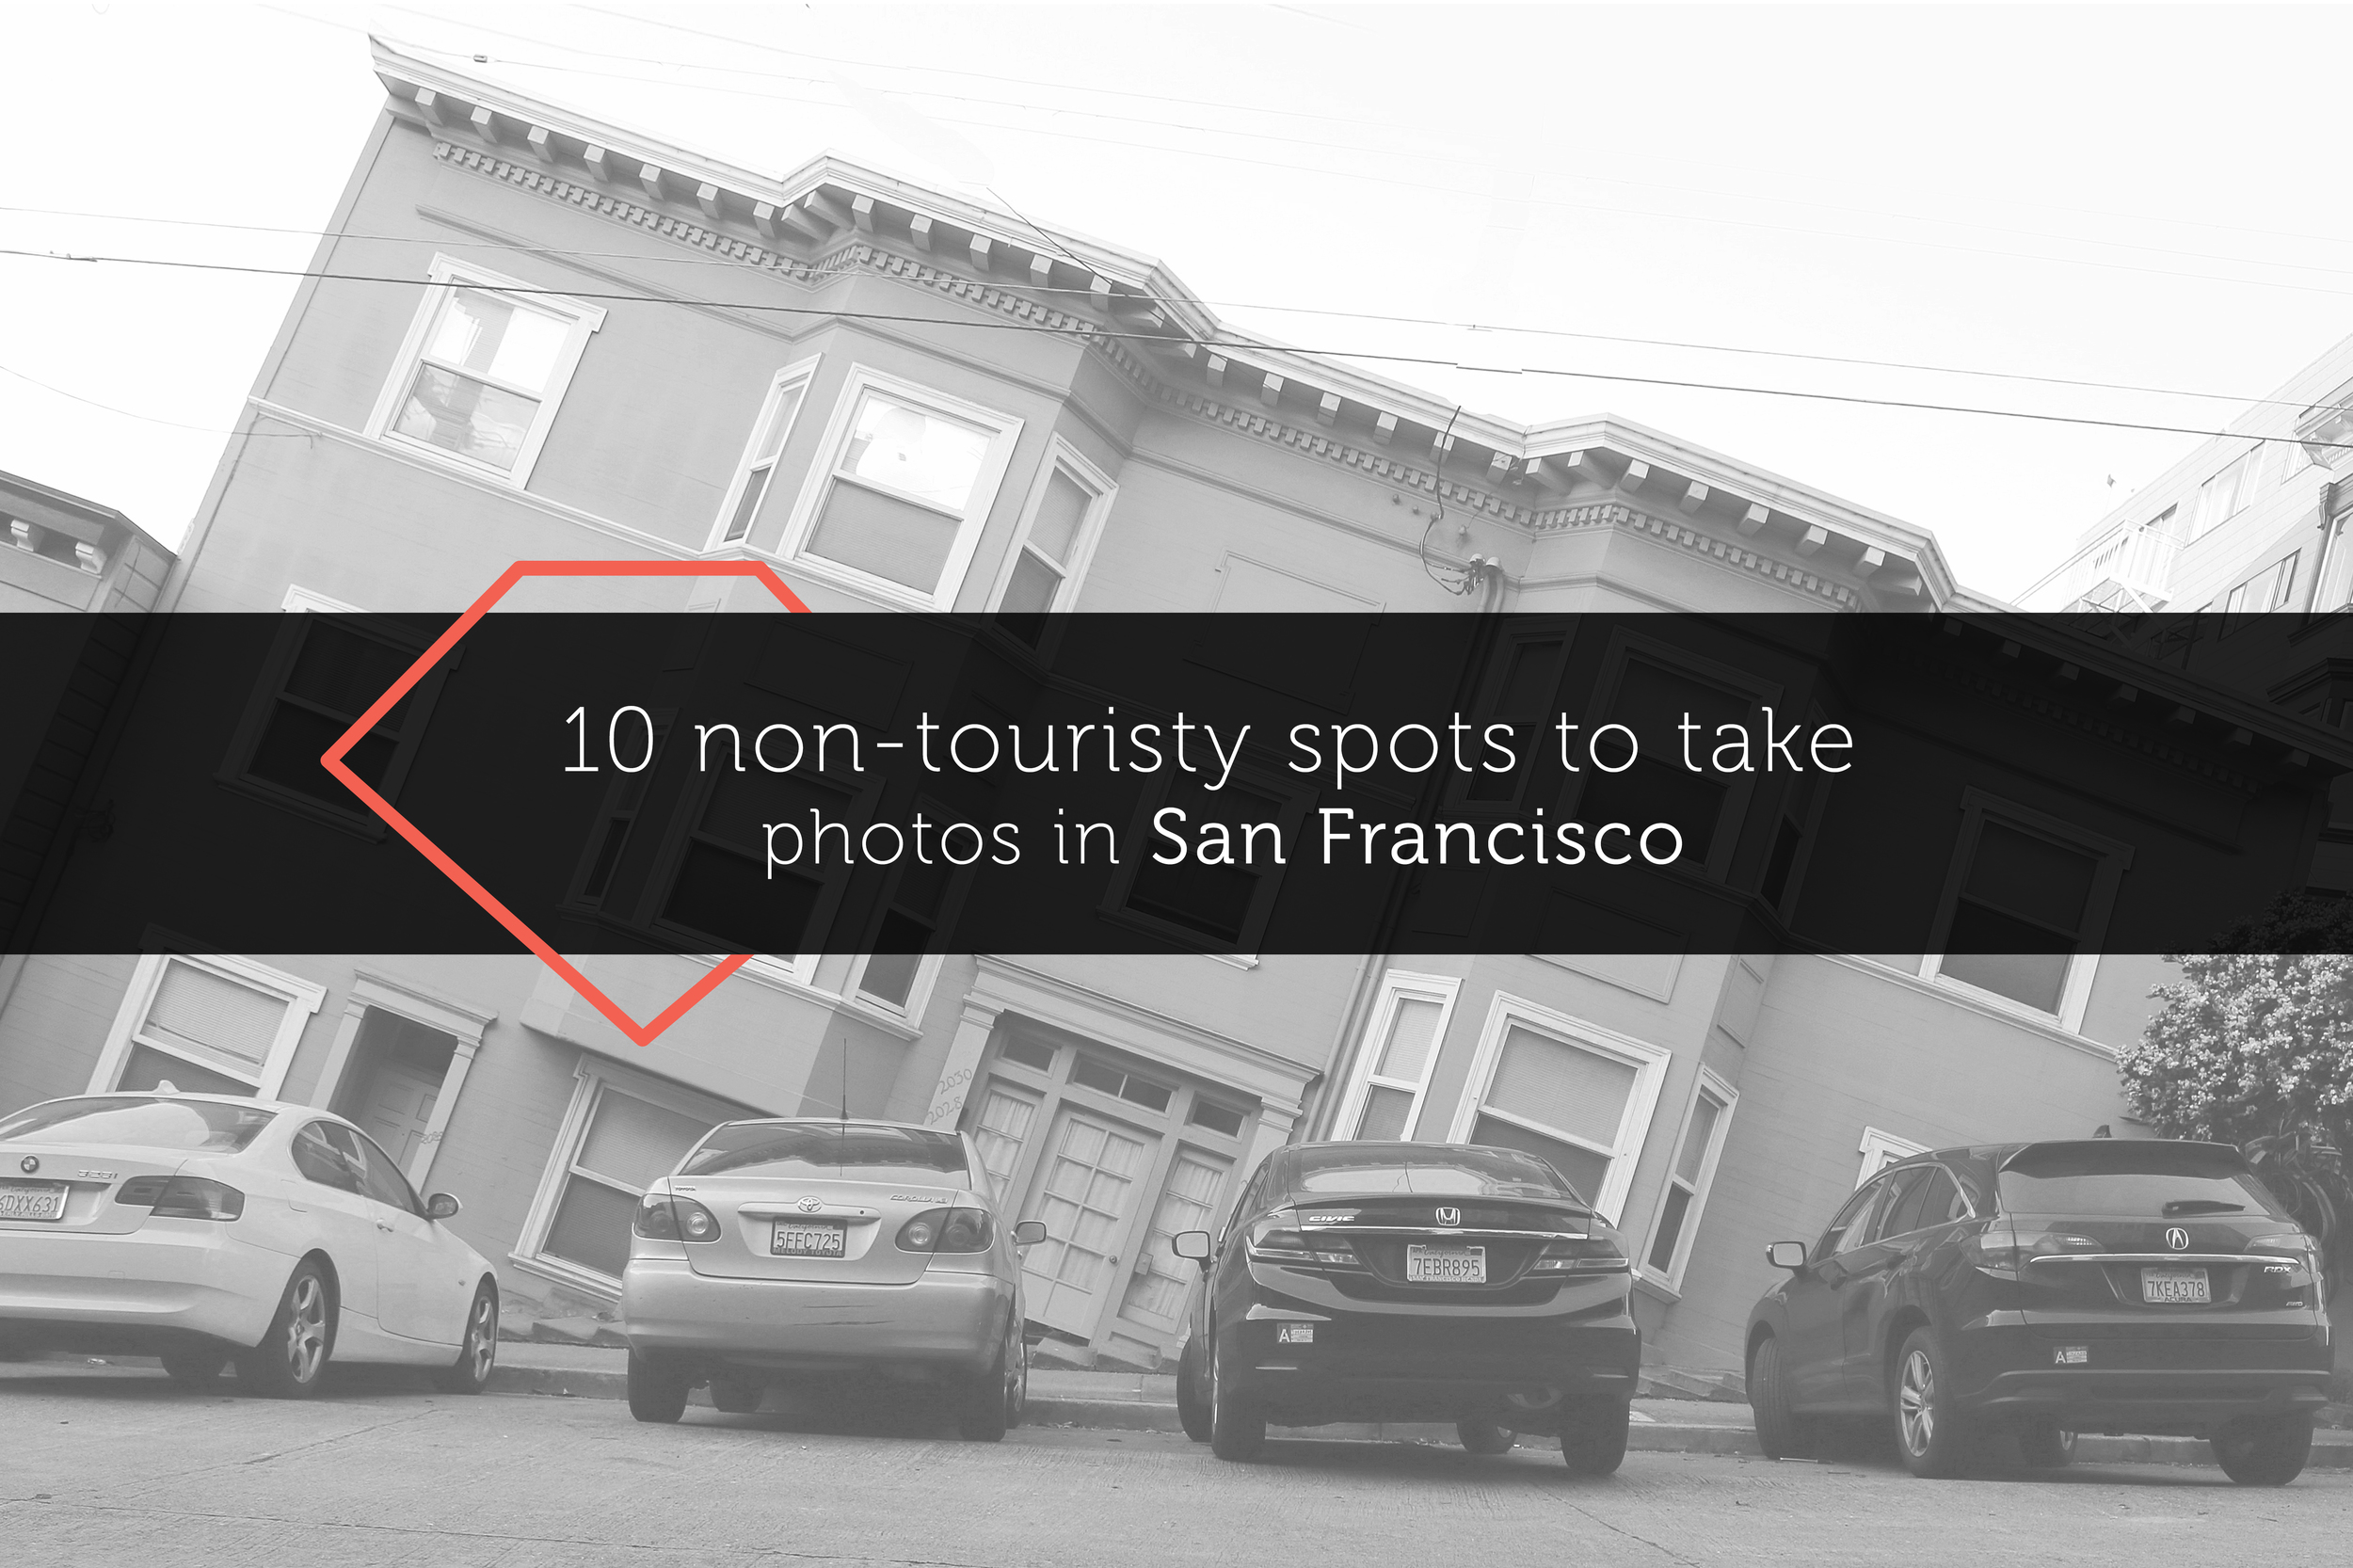 10-non-touristy-spots-to-take-photos-in-San-Francisco.jpg